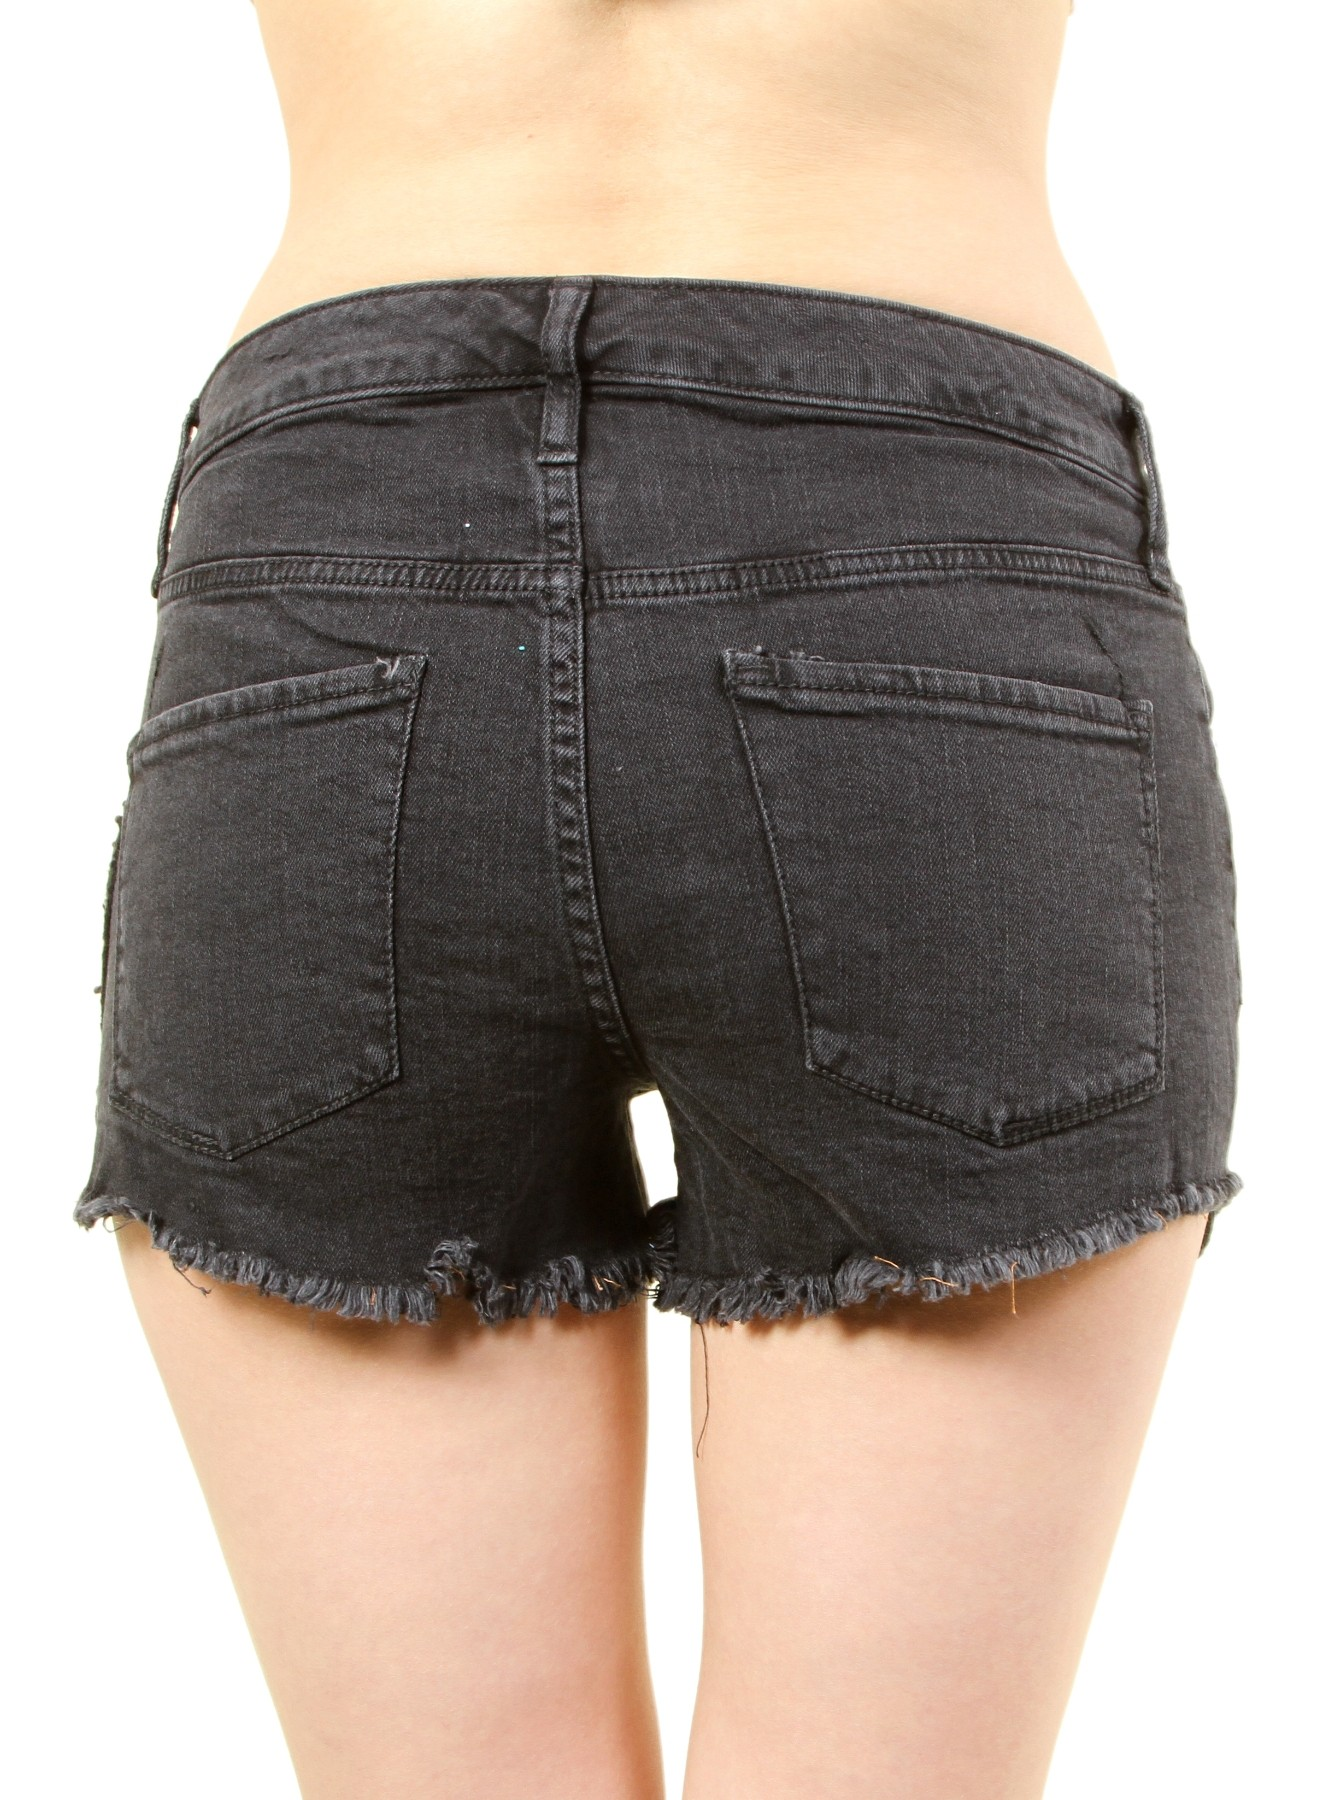 a93bfbb758b7 WOMEN'S HIGH RISE SHORTS WITH PATCHES. FH-MBB019864-BLACK